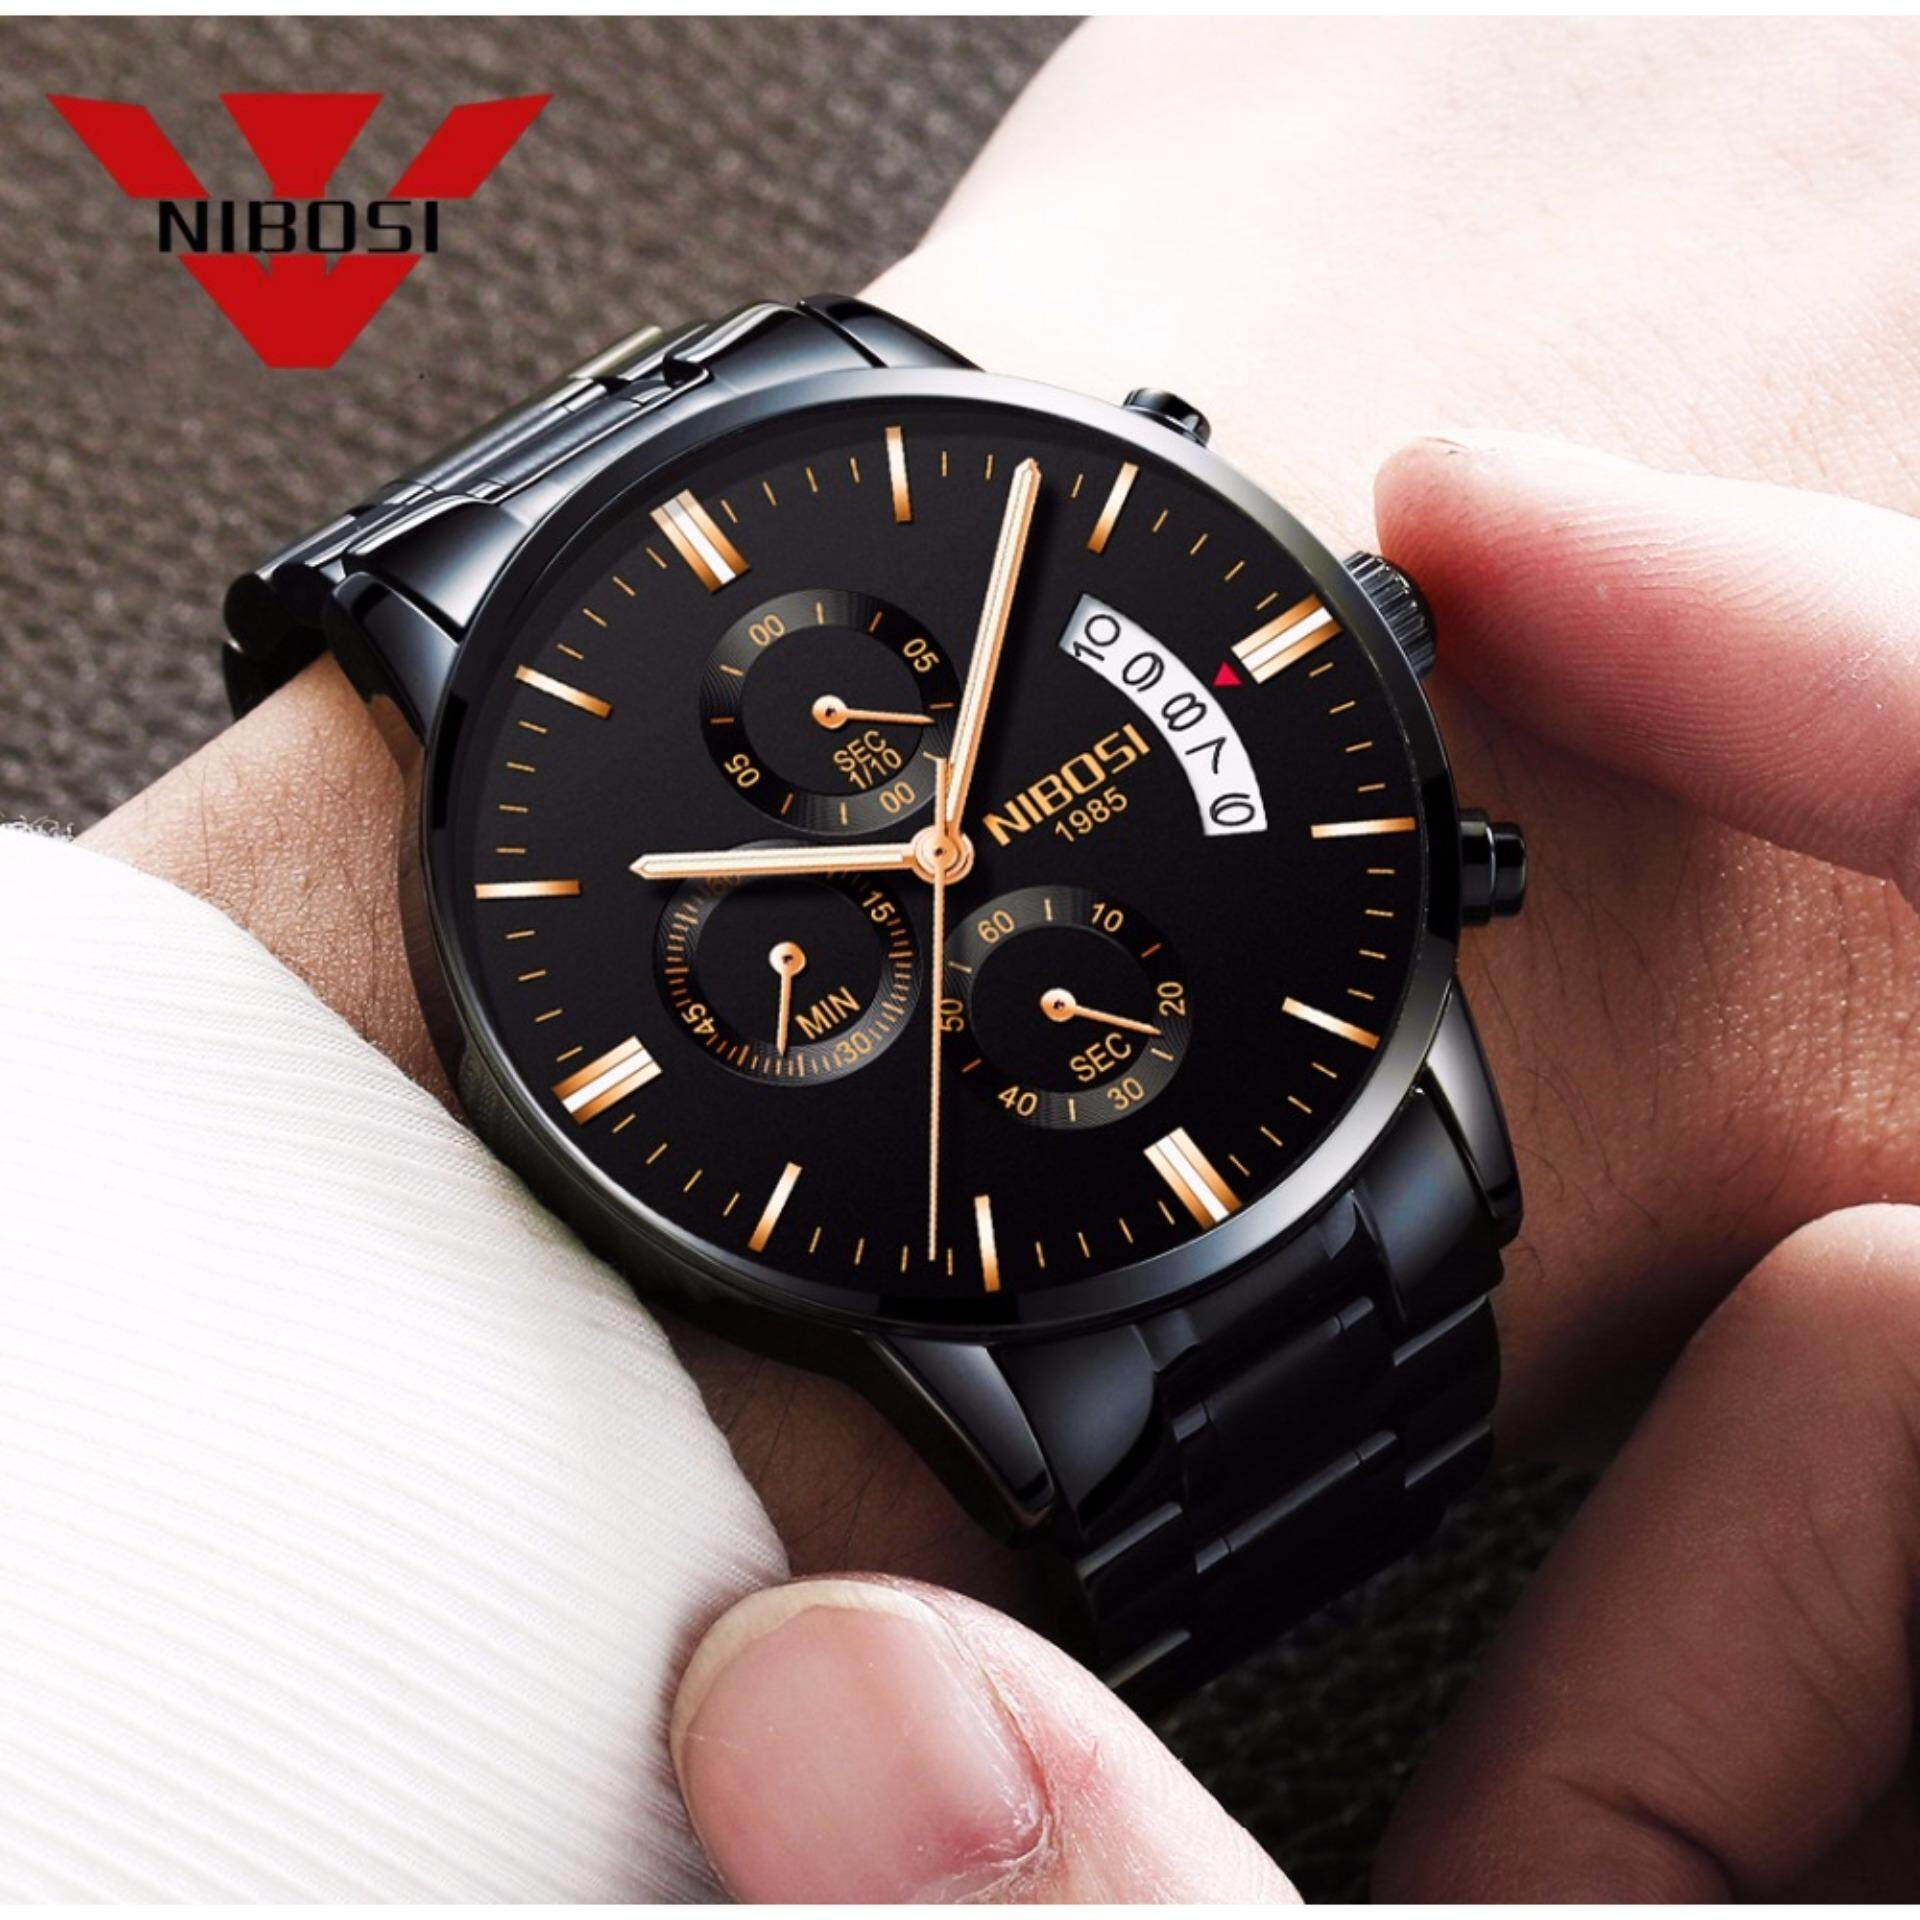 NIBOSI Relogio Masculino Men Watches Luxury Famous Top Brand Men's Fashion Casual Dress Watch Military Quartz Wristwatches Saat 2309 - intl